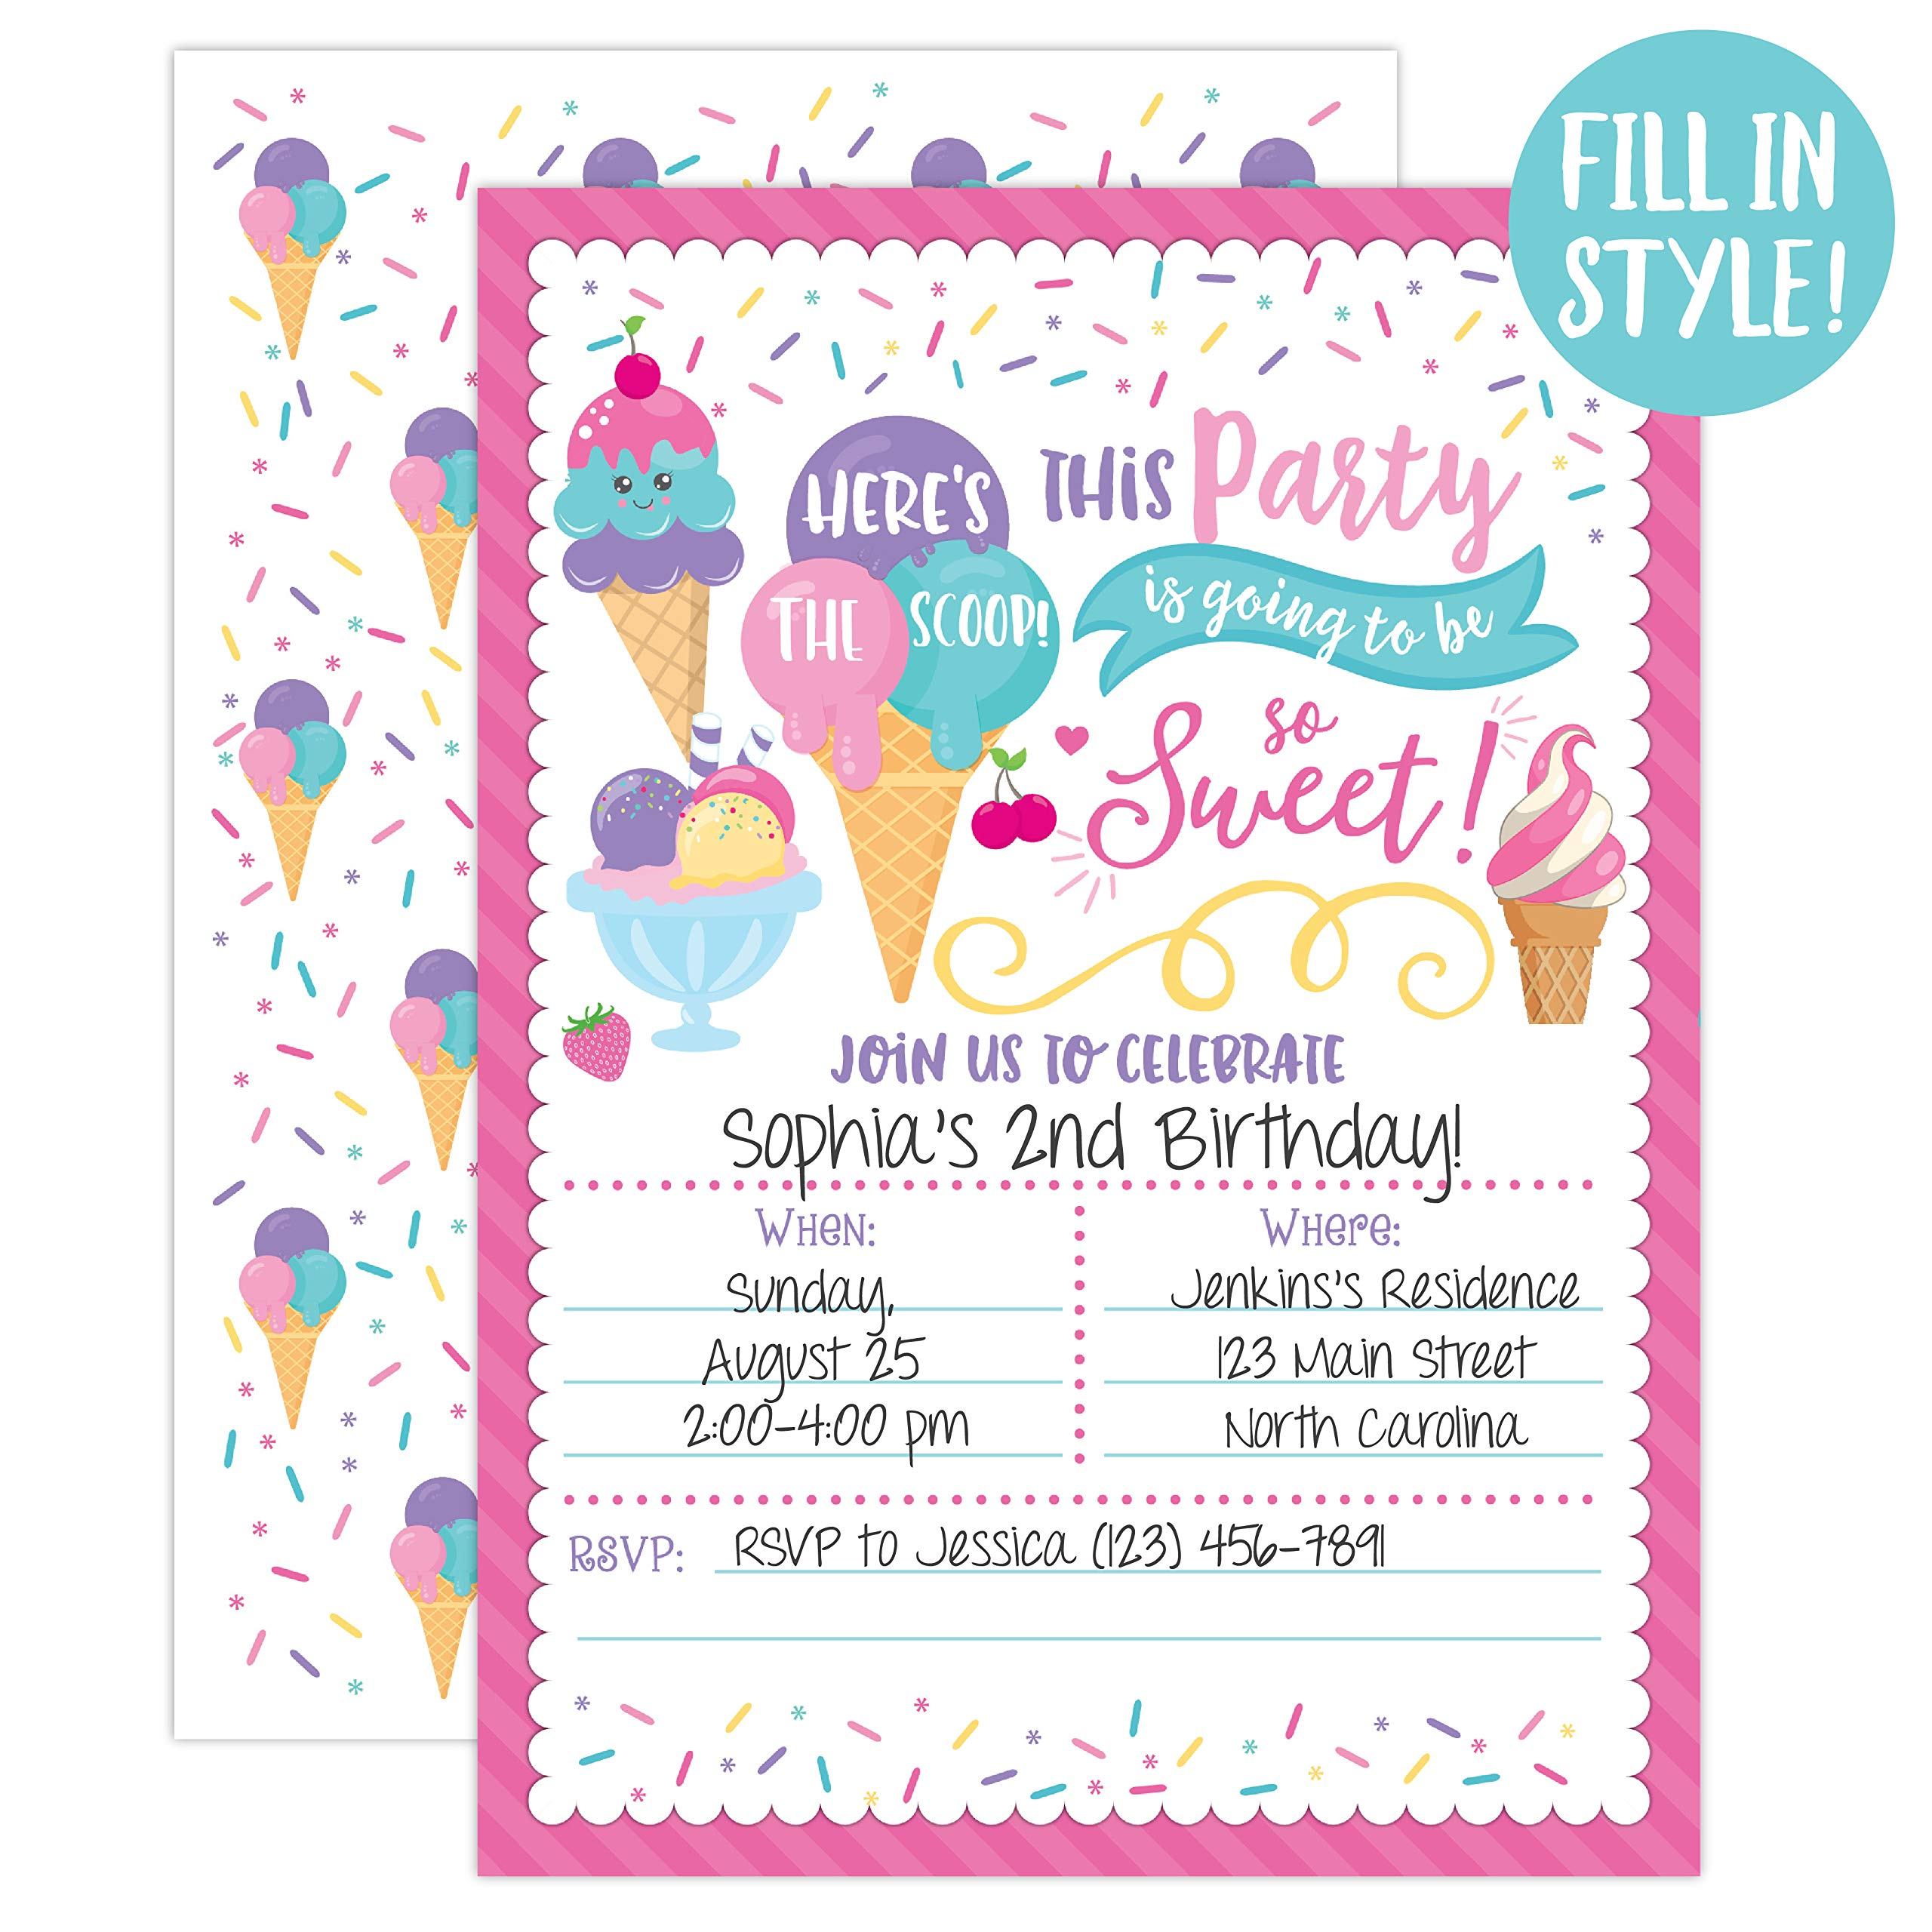 Ice Cream Birthday Party Invitations, Girl Birthday Invitations, Here's The Scoop, Ice Cream Social, 20 Fill in Invitations and Envelopes by Your Main Event Prints (Image #1)